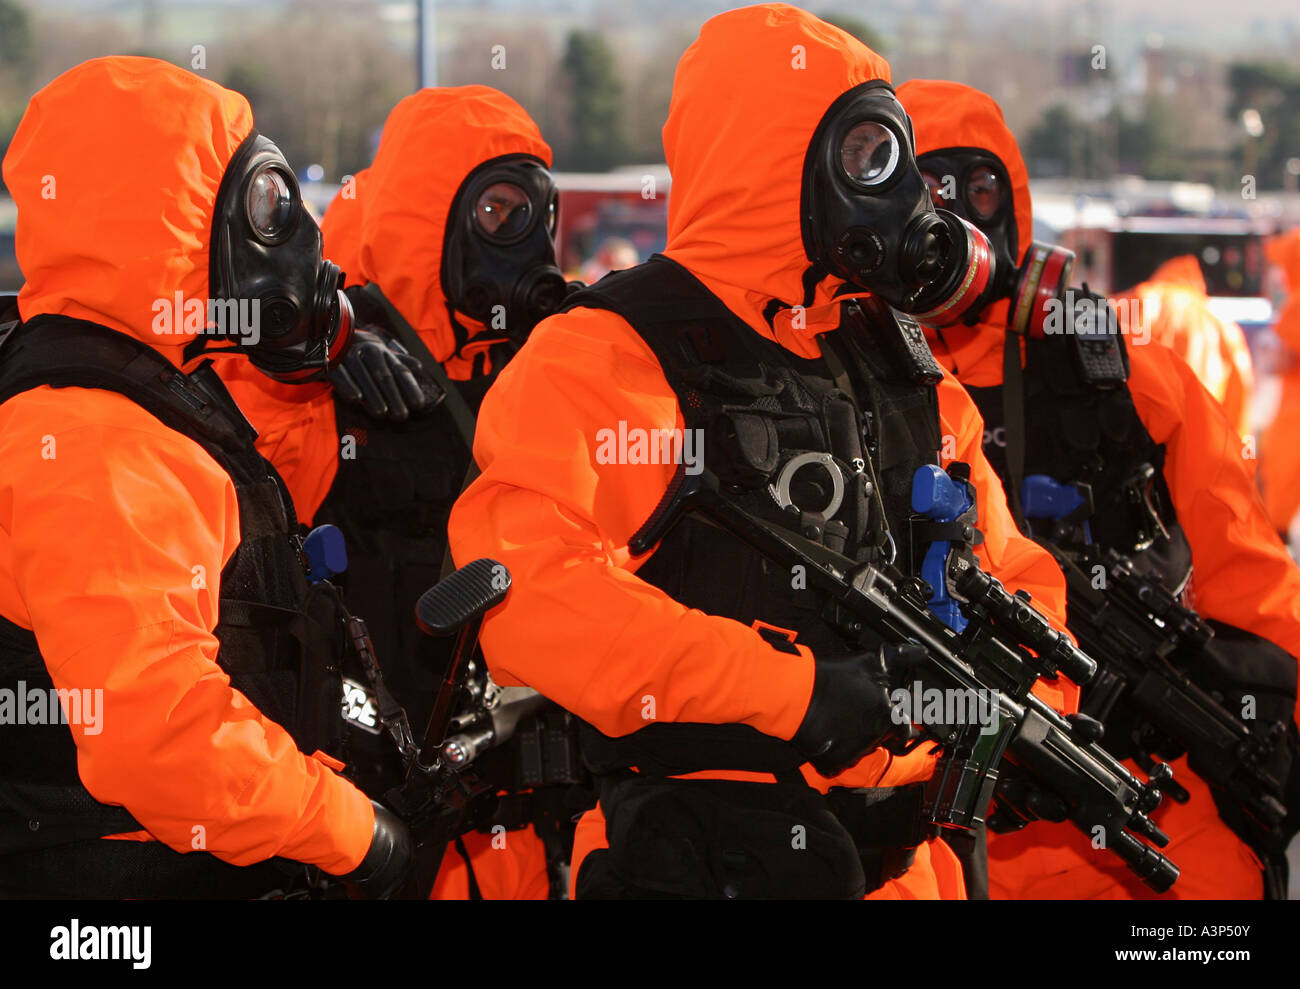 British armed police dressed in anti nuclear chemical warfare suits training for terror attacks - Stock Image